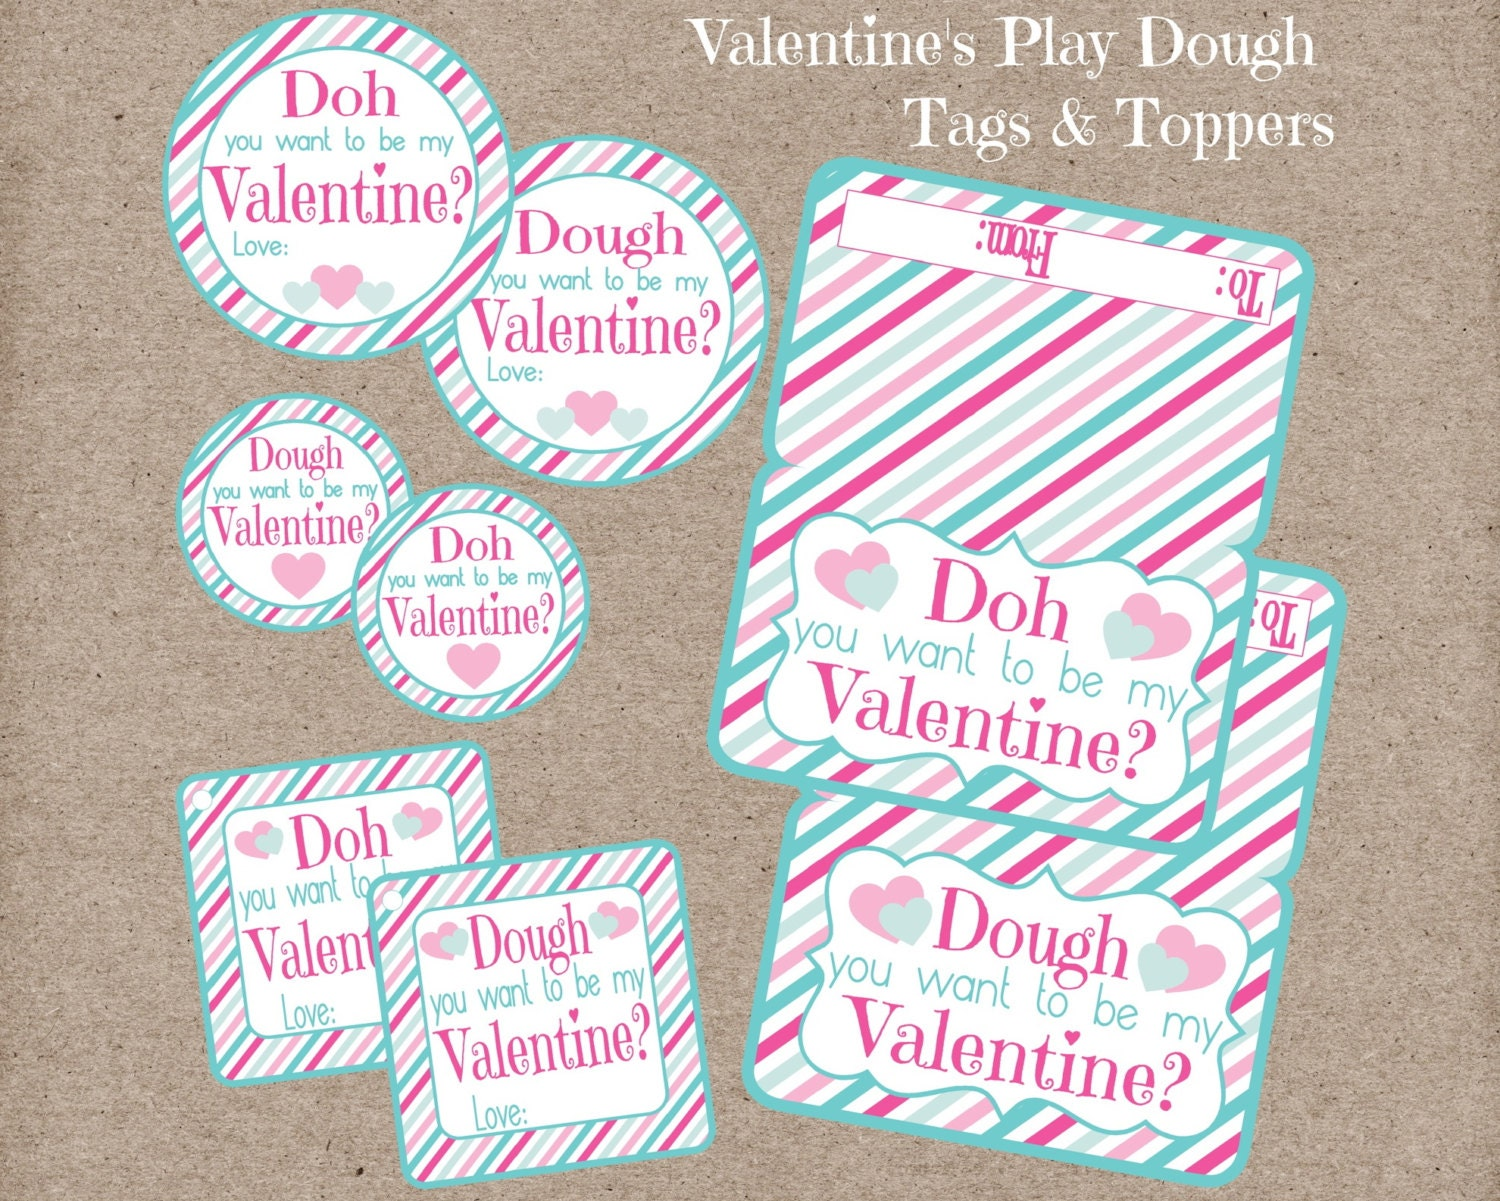 valentine's day play dough tags stickers and bag, Ideas